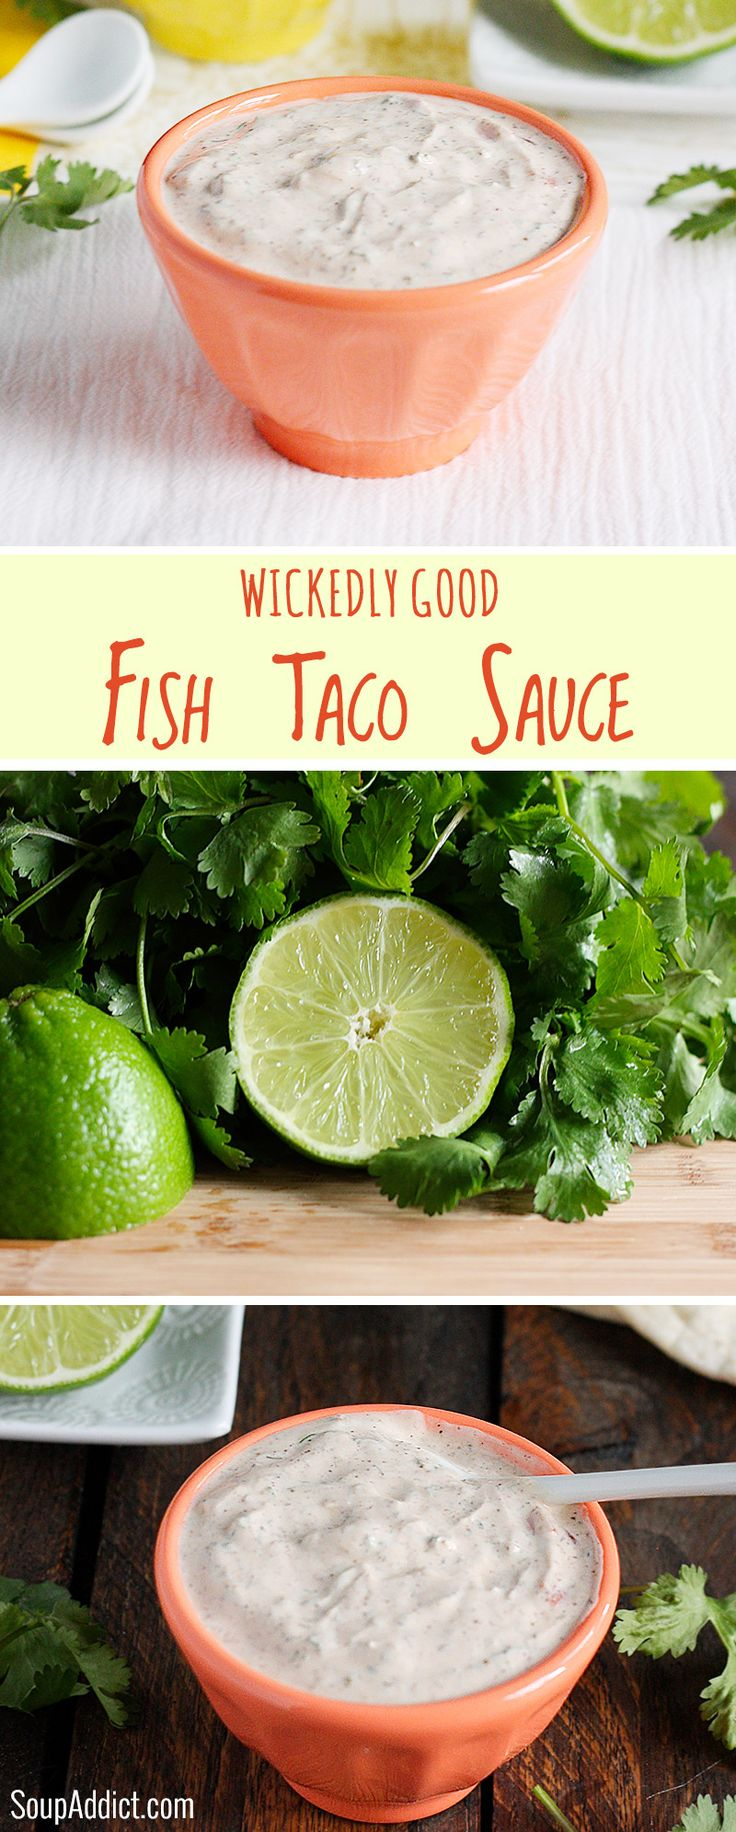 it's summer: fish taco bar time! And here's the best white sauce for your fish tacos. Perfectly spiced and make-ahead easy.